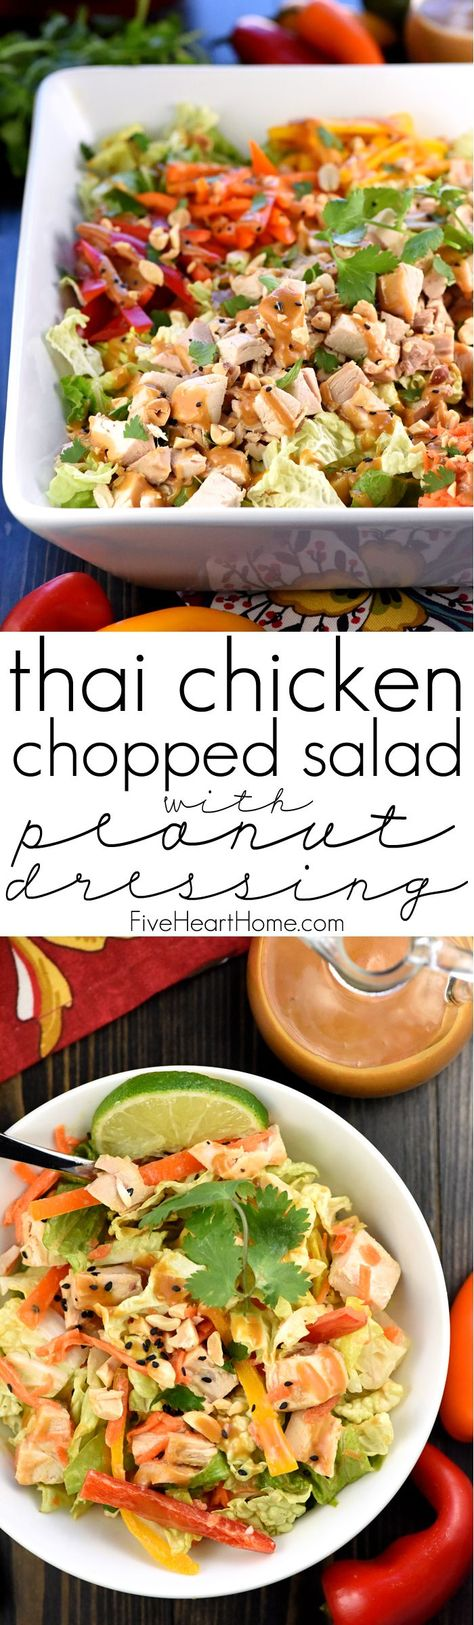 Thai Chicken Chopped Salad with Peanut Dressing ~ exploding with the contrasting flavors and textures of crunchy Napa cabbage, juicy chicken, colorful peppers, sweet carrots, salty peanuts, and fresh cilantro!   FiveHeartHome.com